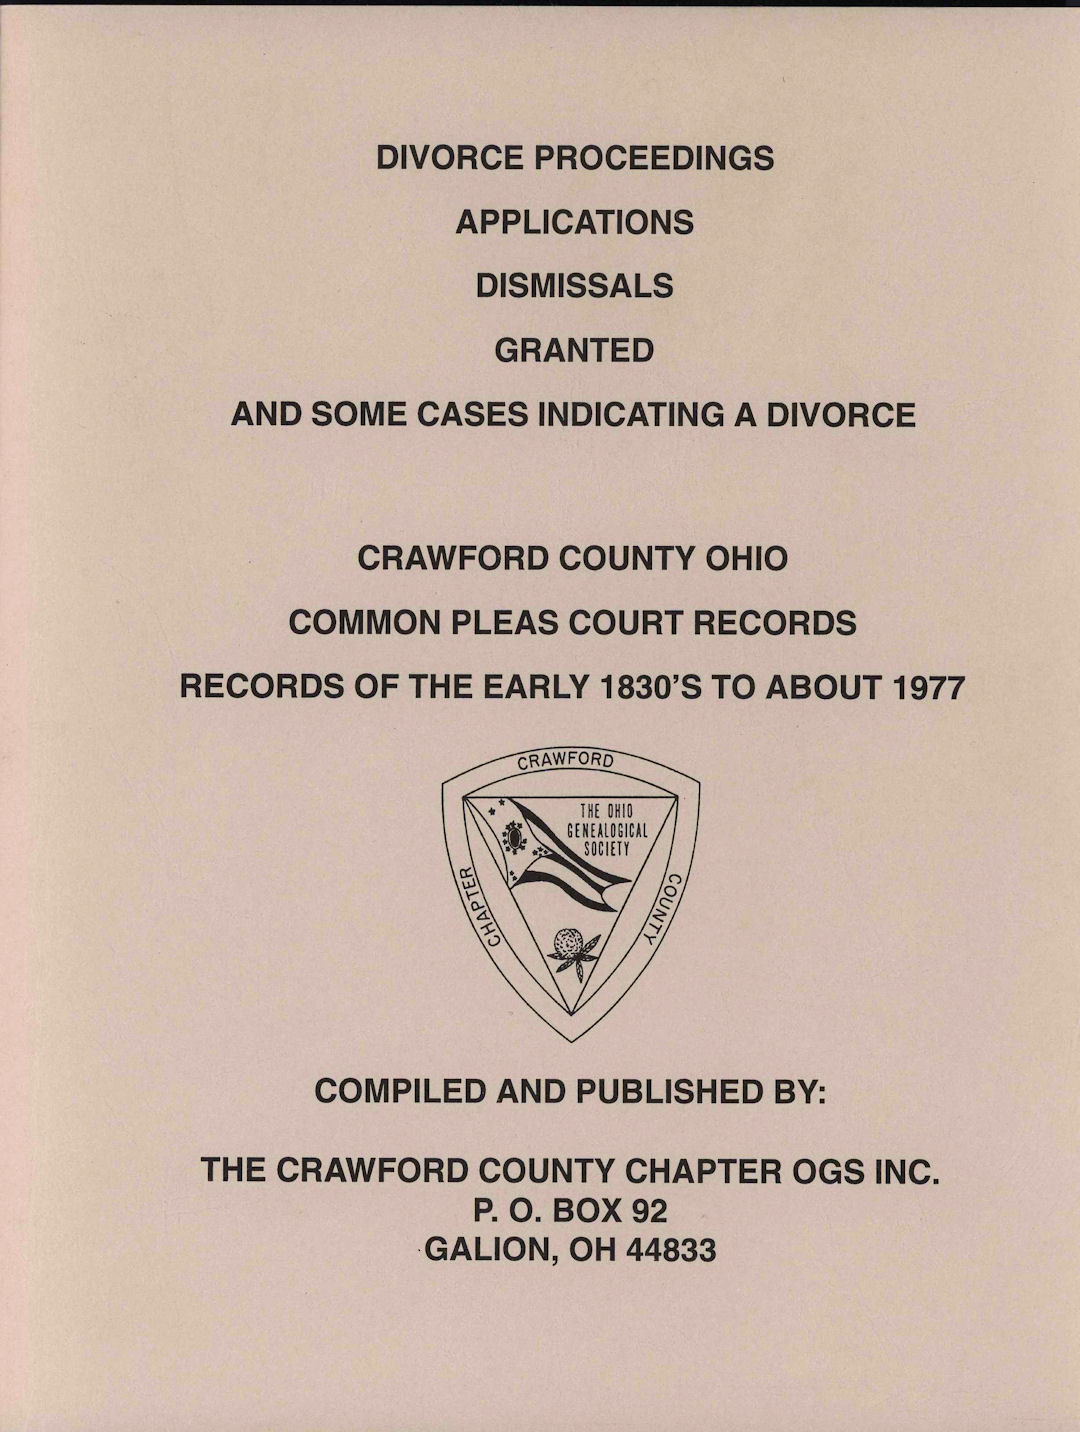 Divorce Proceedings 1830 to 1977 in Crawford County Ohio